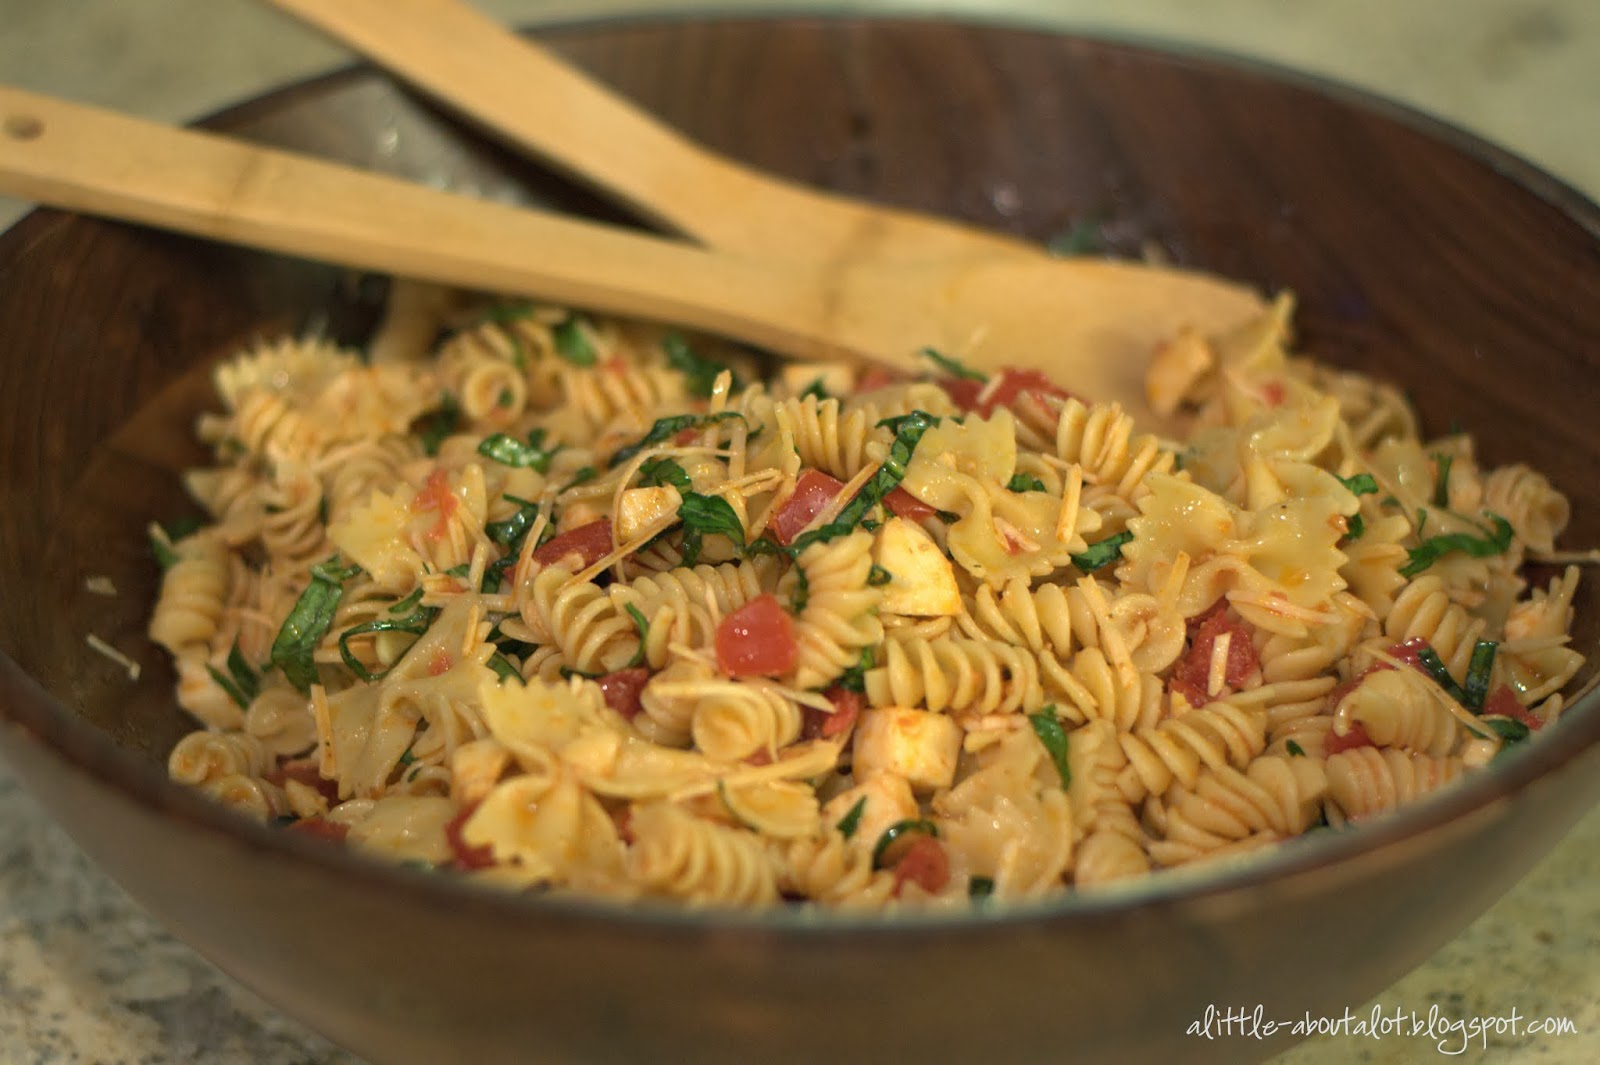 little about A LOT: Sun Dried Tomato Pasta Salad